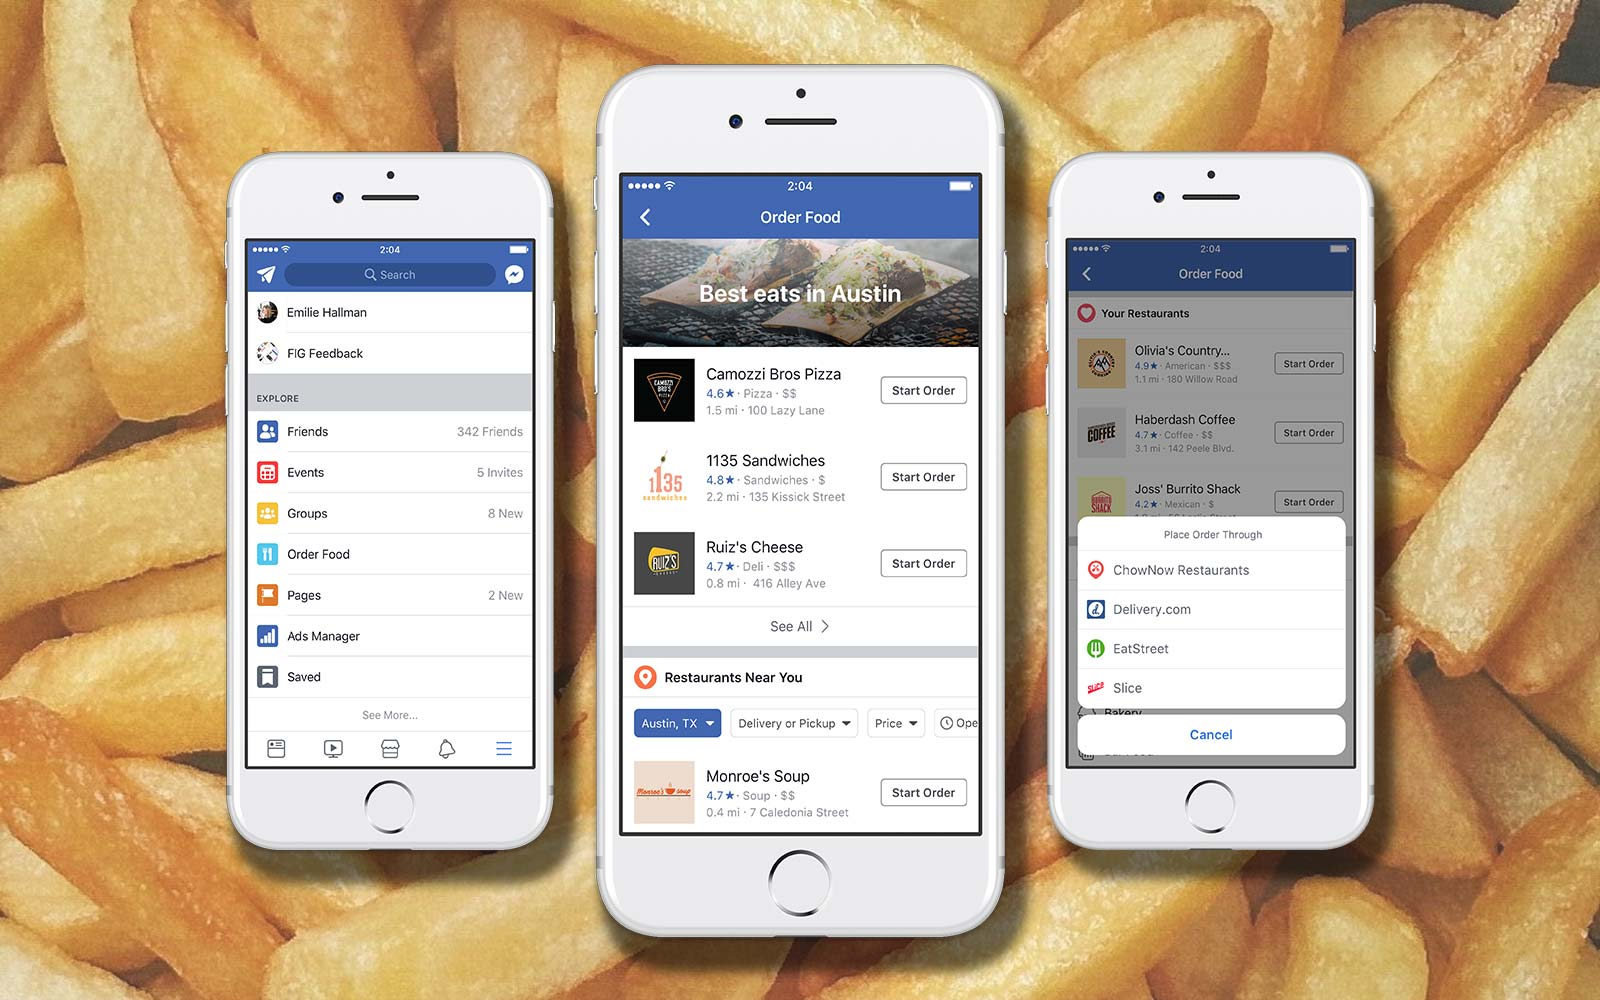 What can you now order through Facebook?